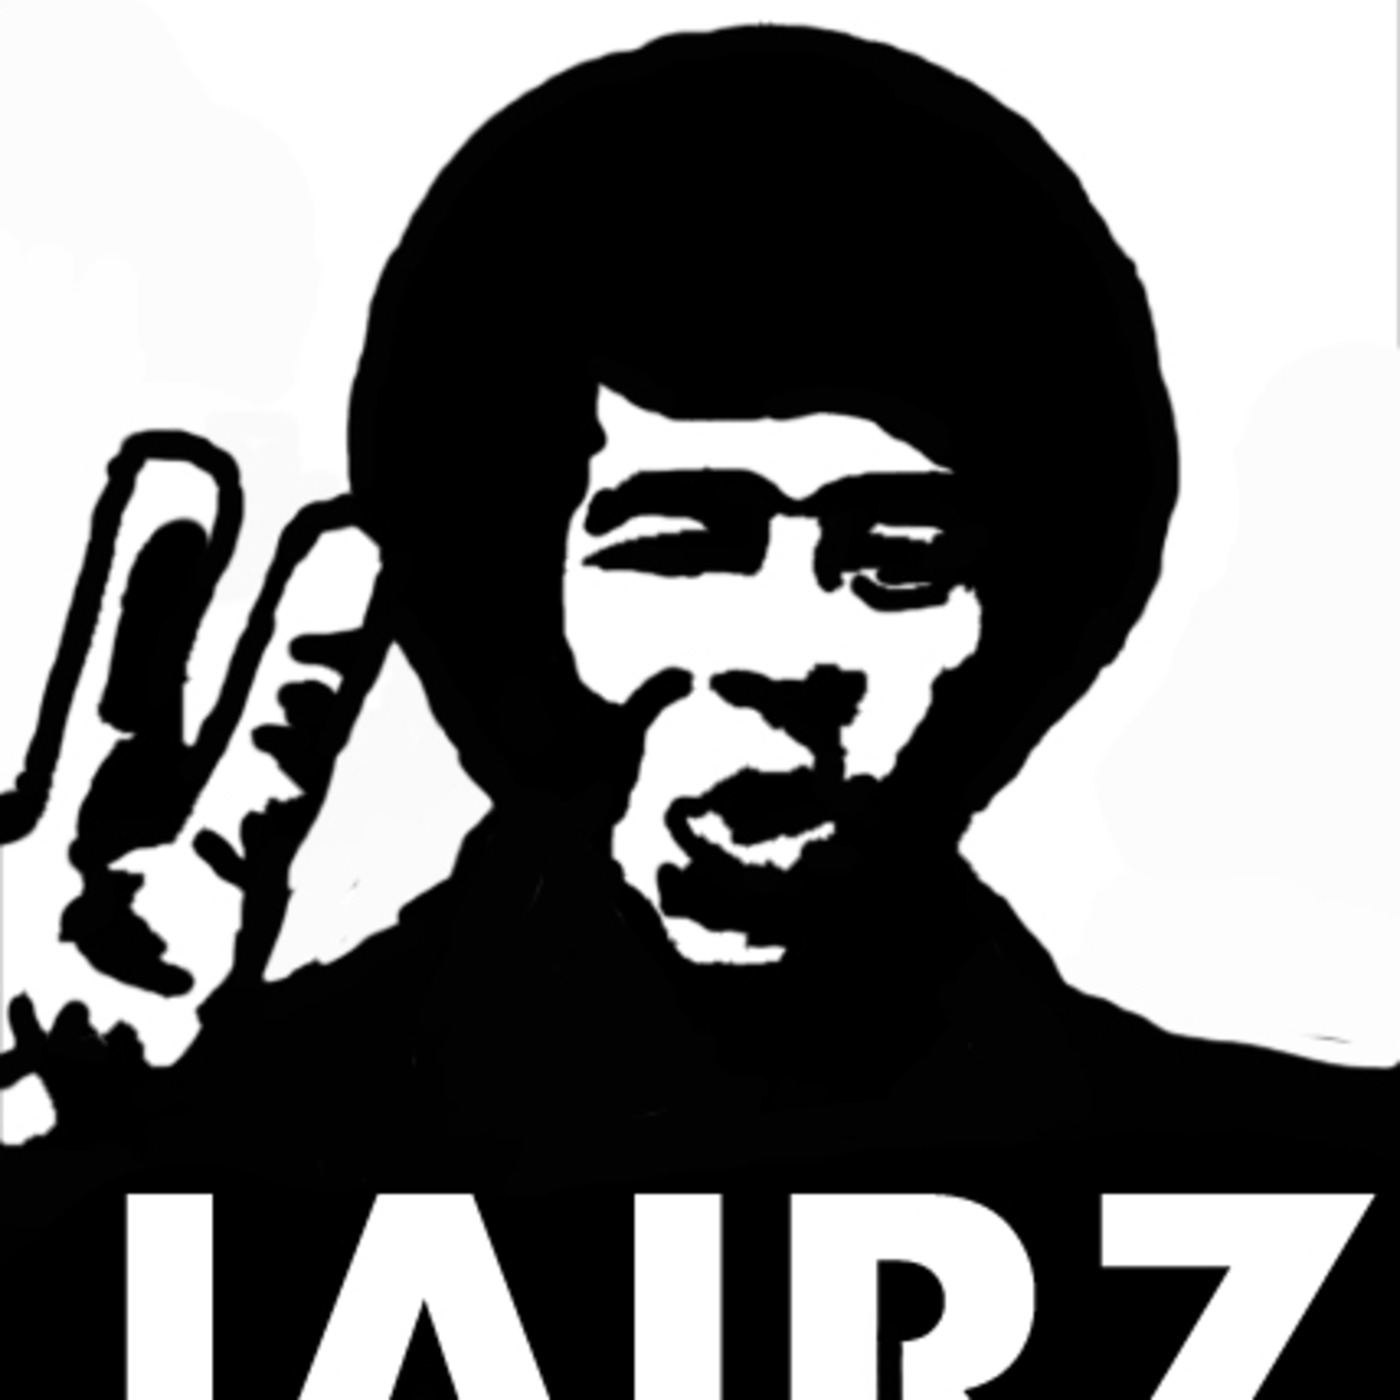 The Full Jairzinho